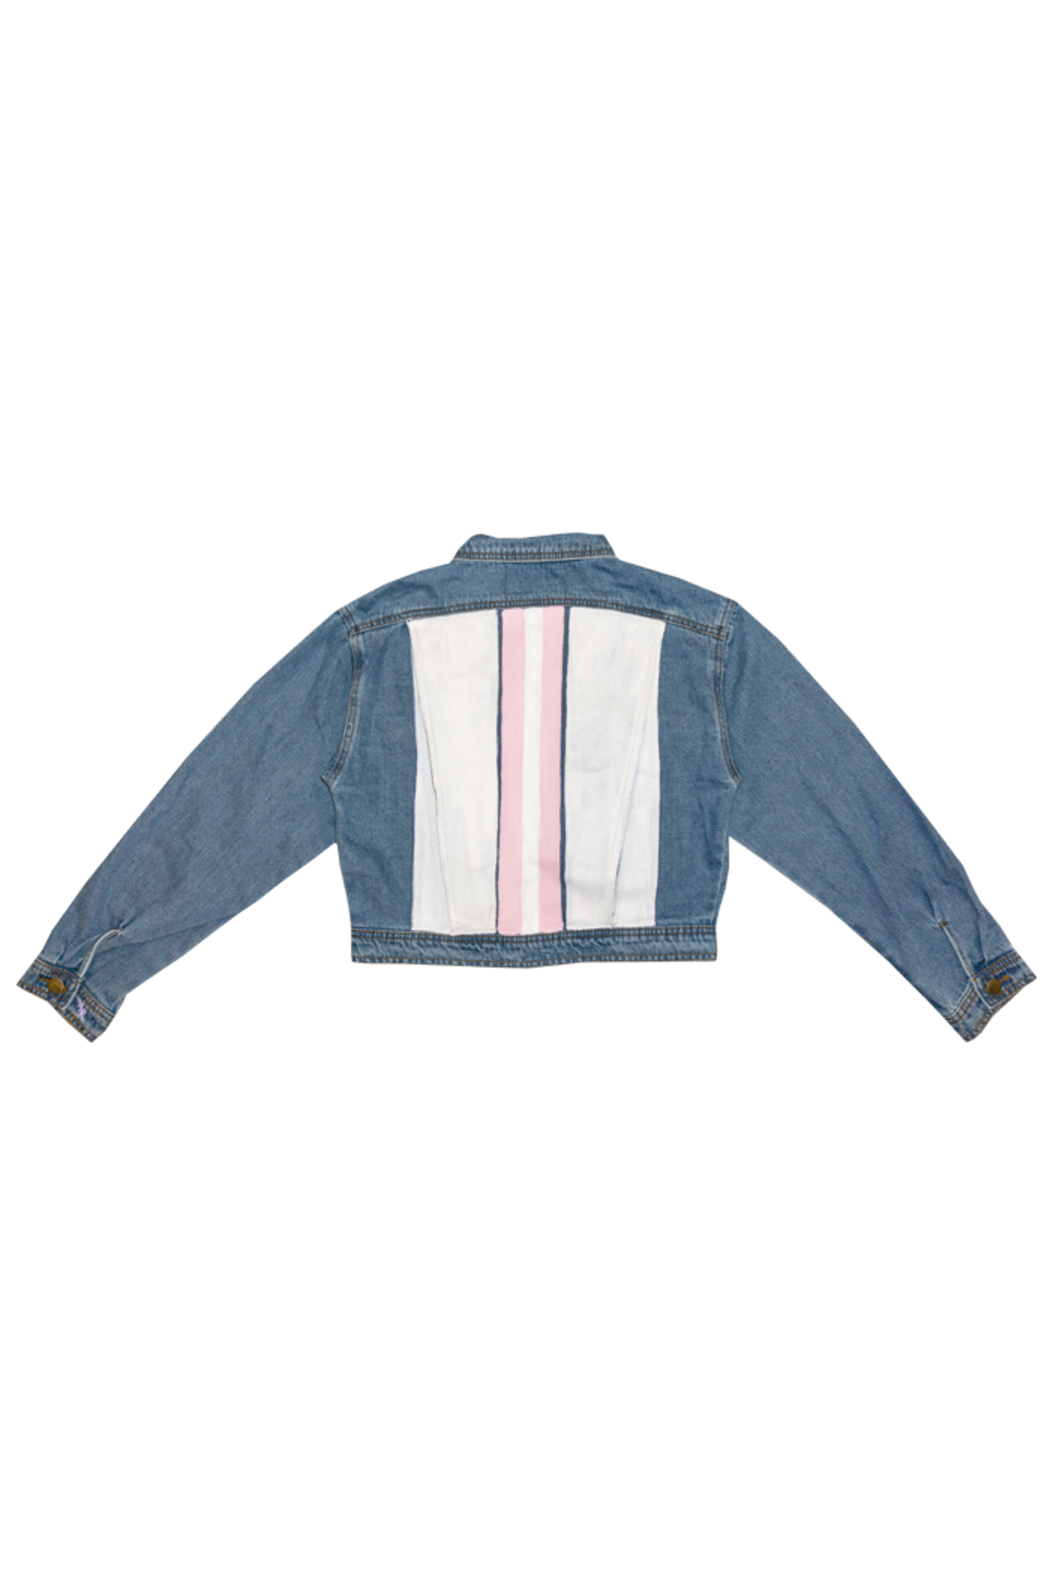 Avery Rowan Art 2 Pink Srtipes on White Back Blue Denim Crop Jacket - Back Cropped Image